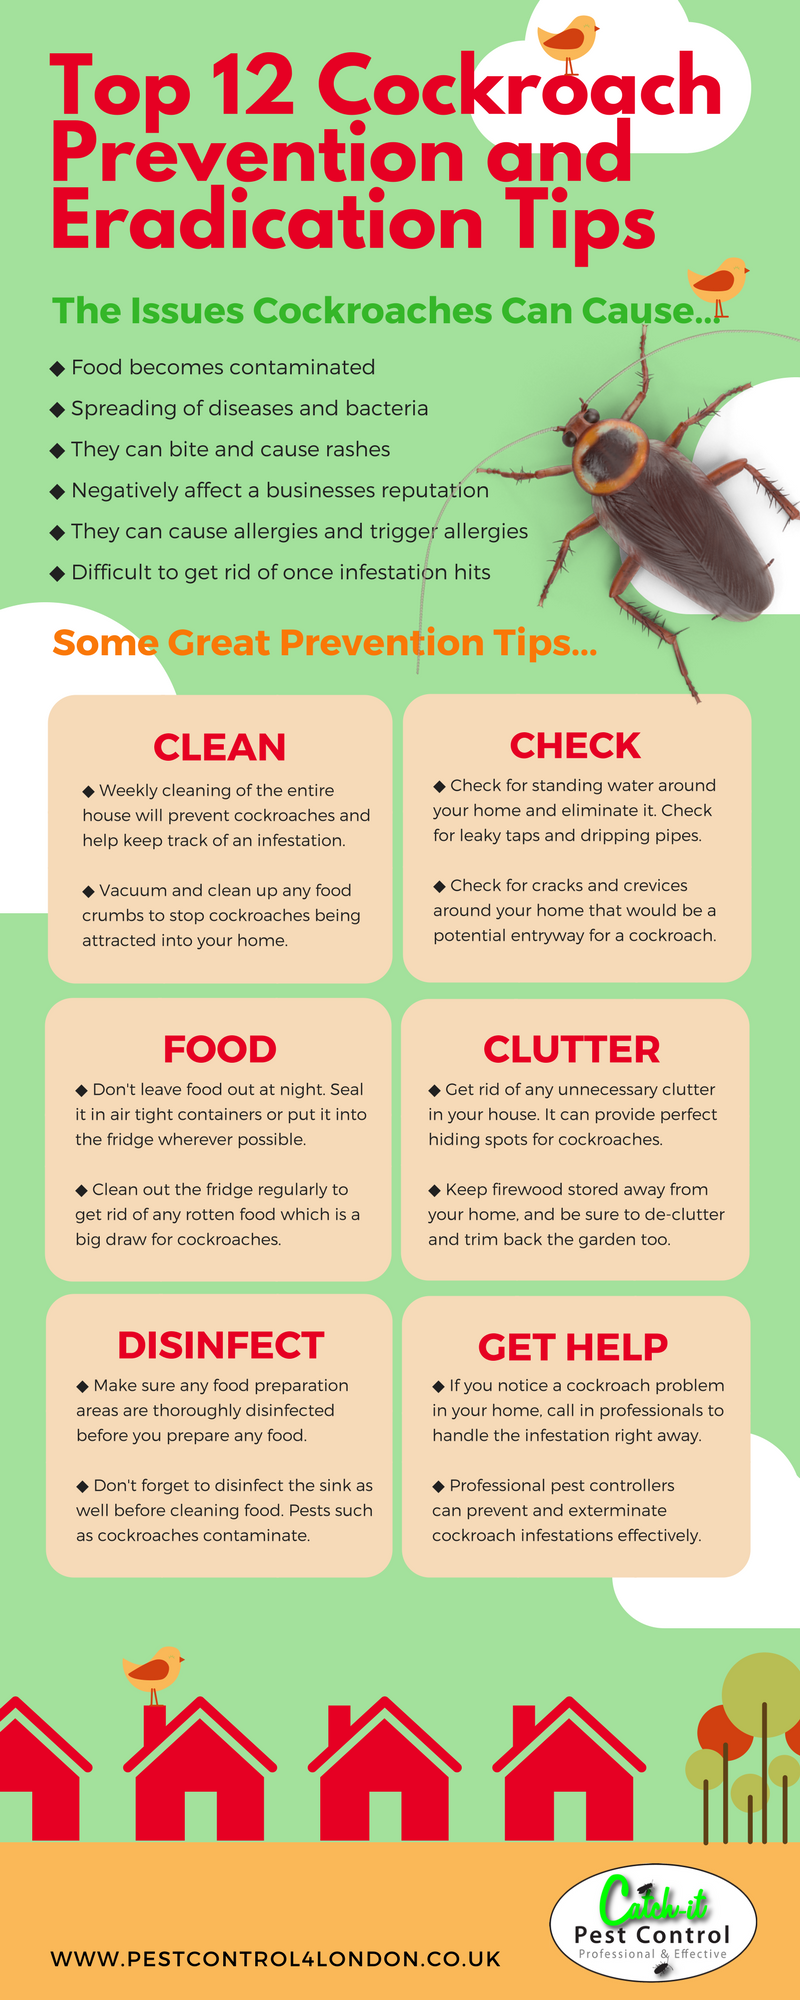 http://www.pestcontrol4london.co.uk/pest-control-north-london.html  This infographic from Catch-it Pest Control will give you the information you need to know about getting rid of and preventing cockroaches and other insects in the UK.